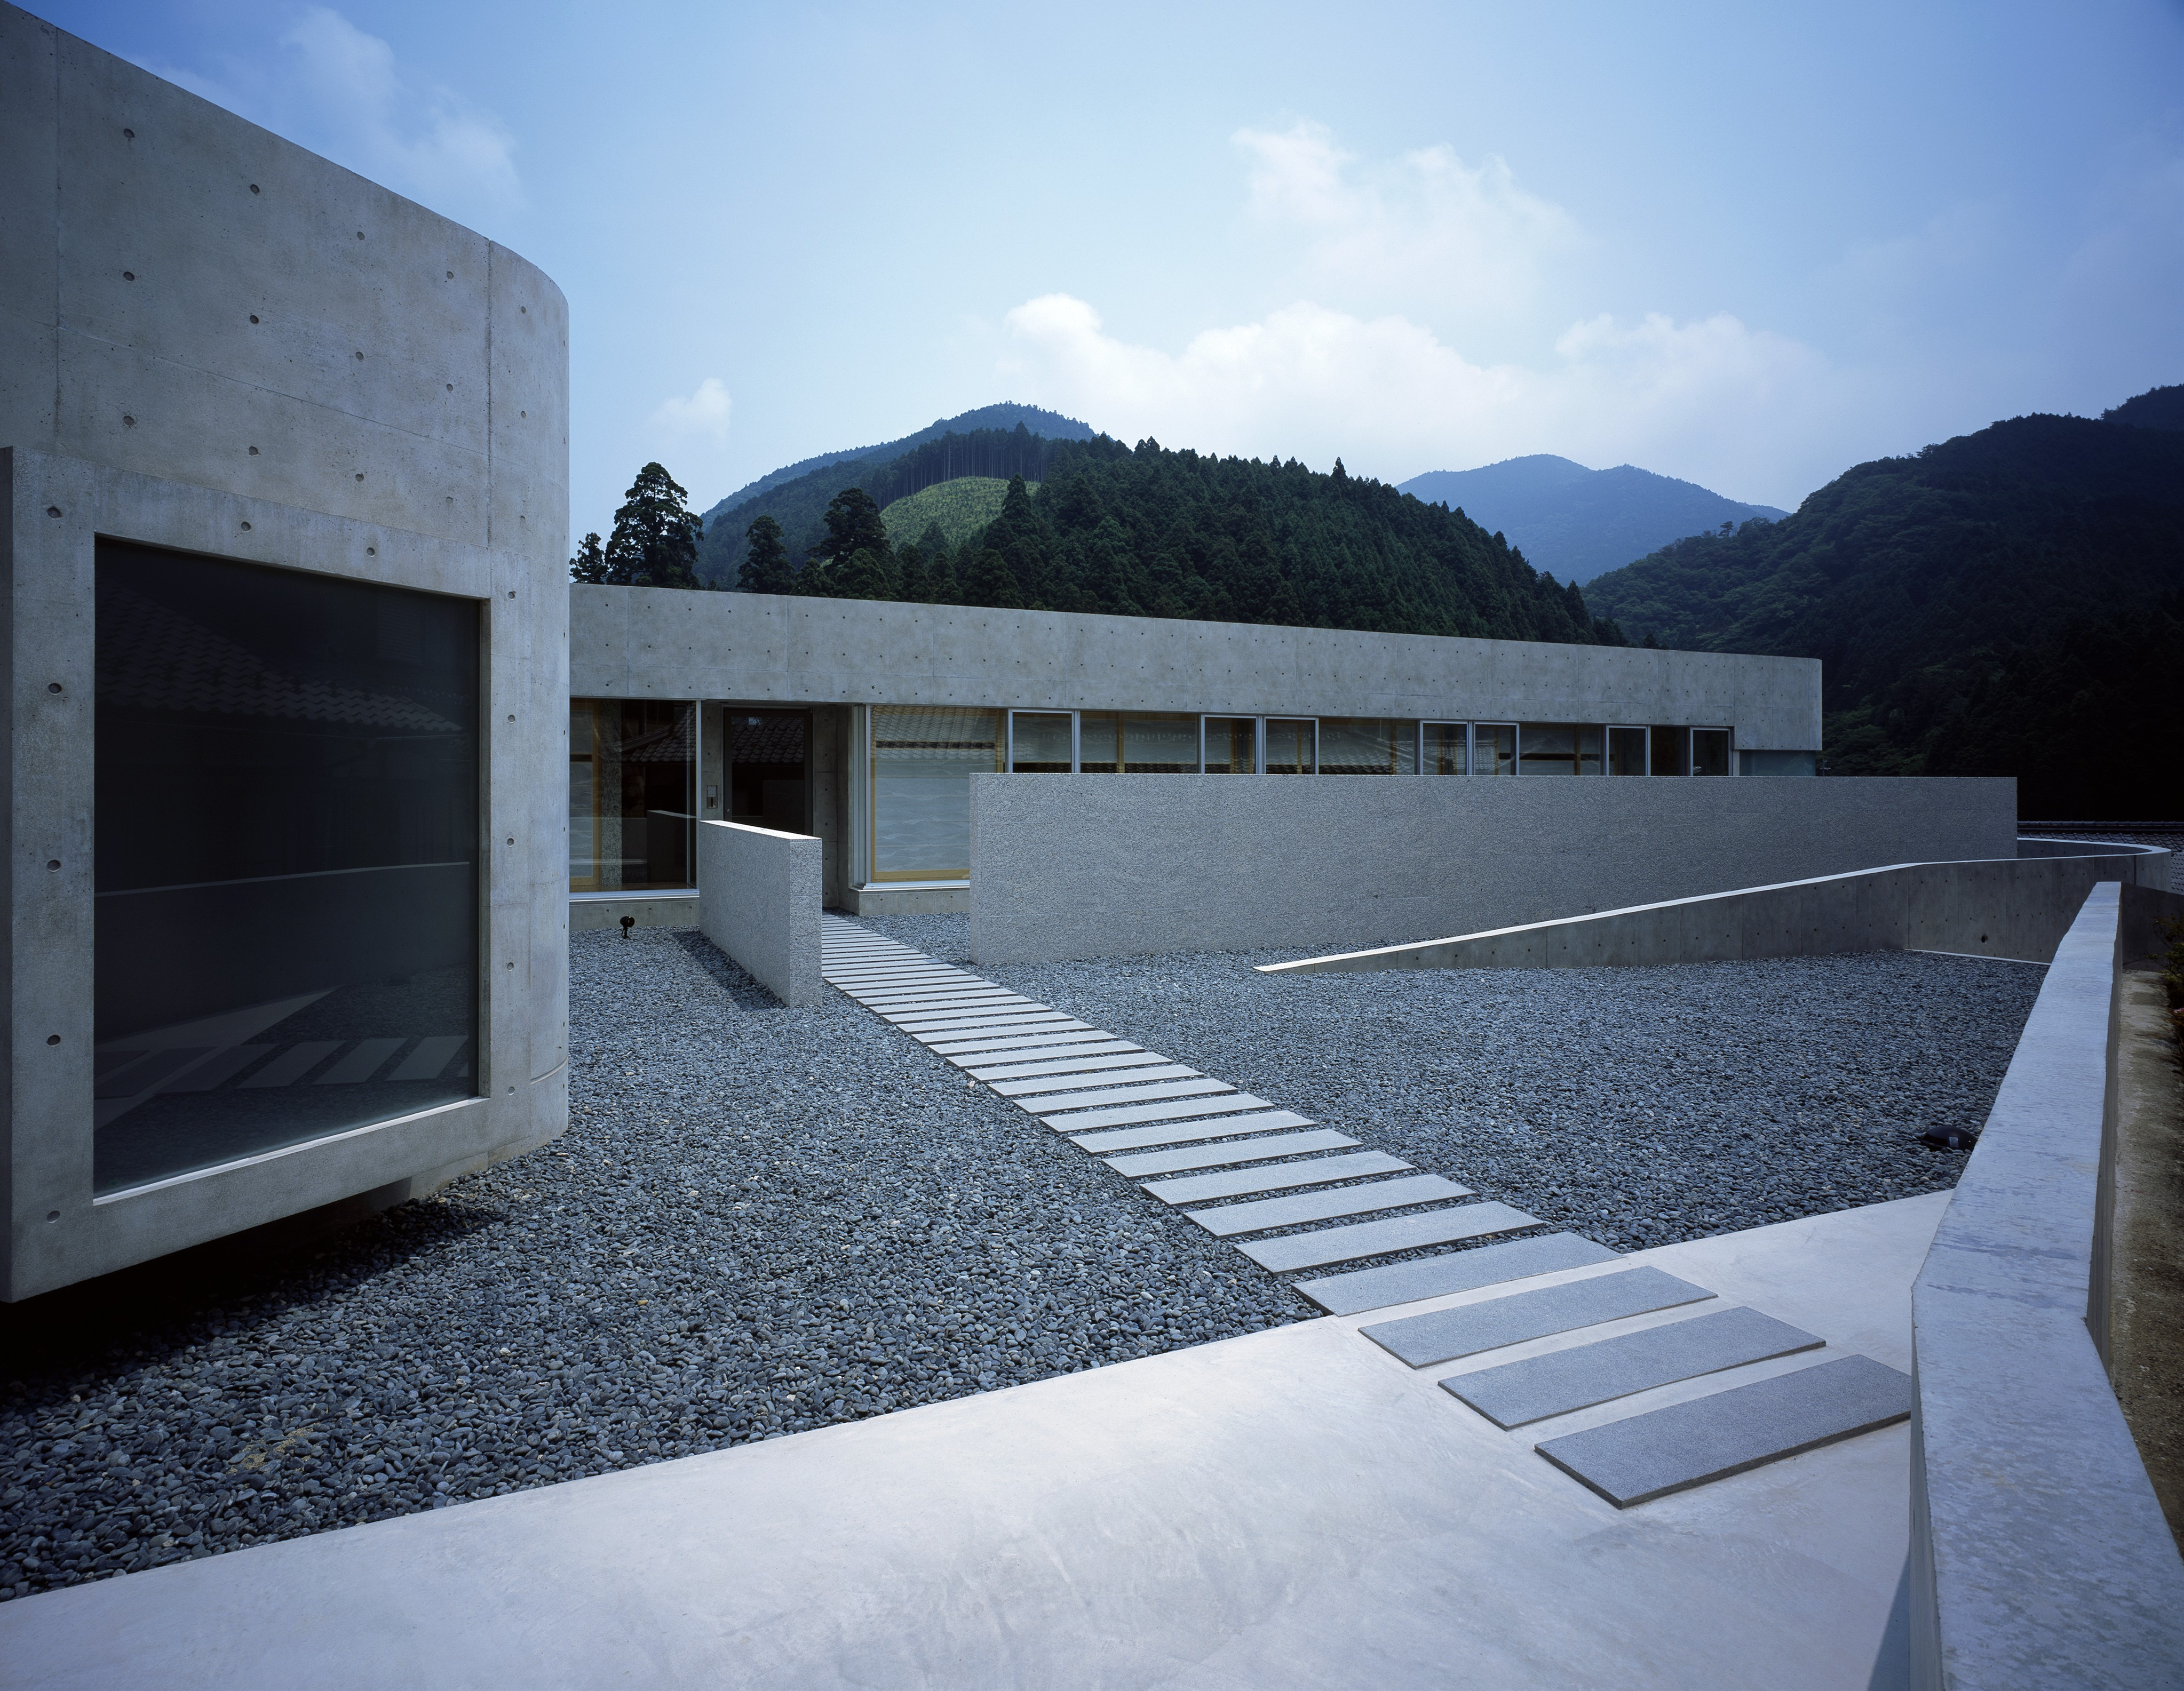 The main entrance is approached via this rectangular path over a rock garden. Windows on this side of the home are full sized.